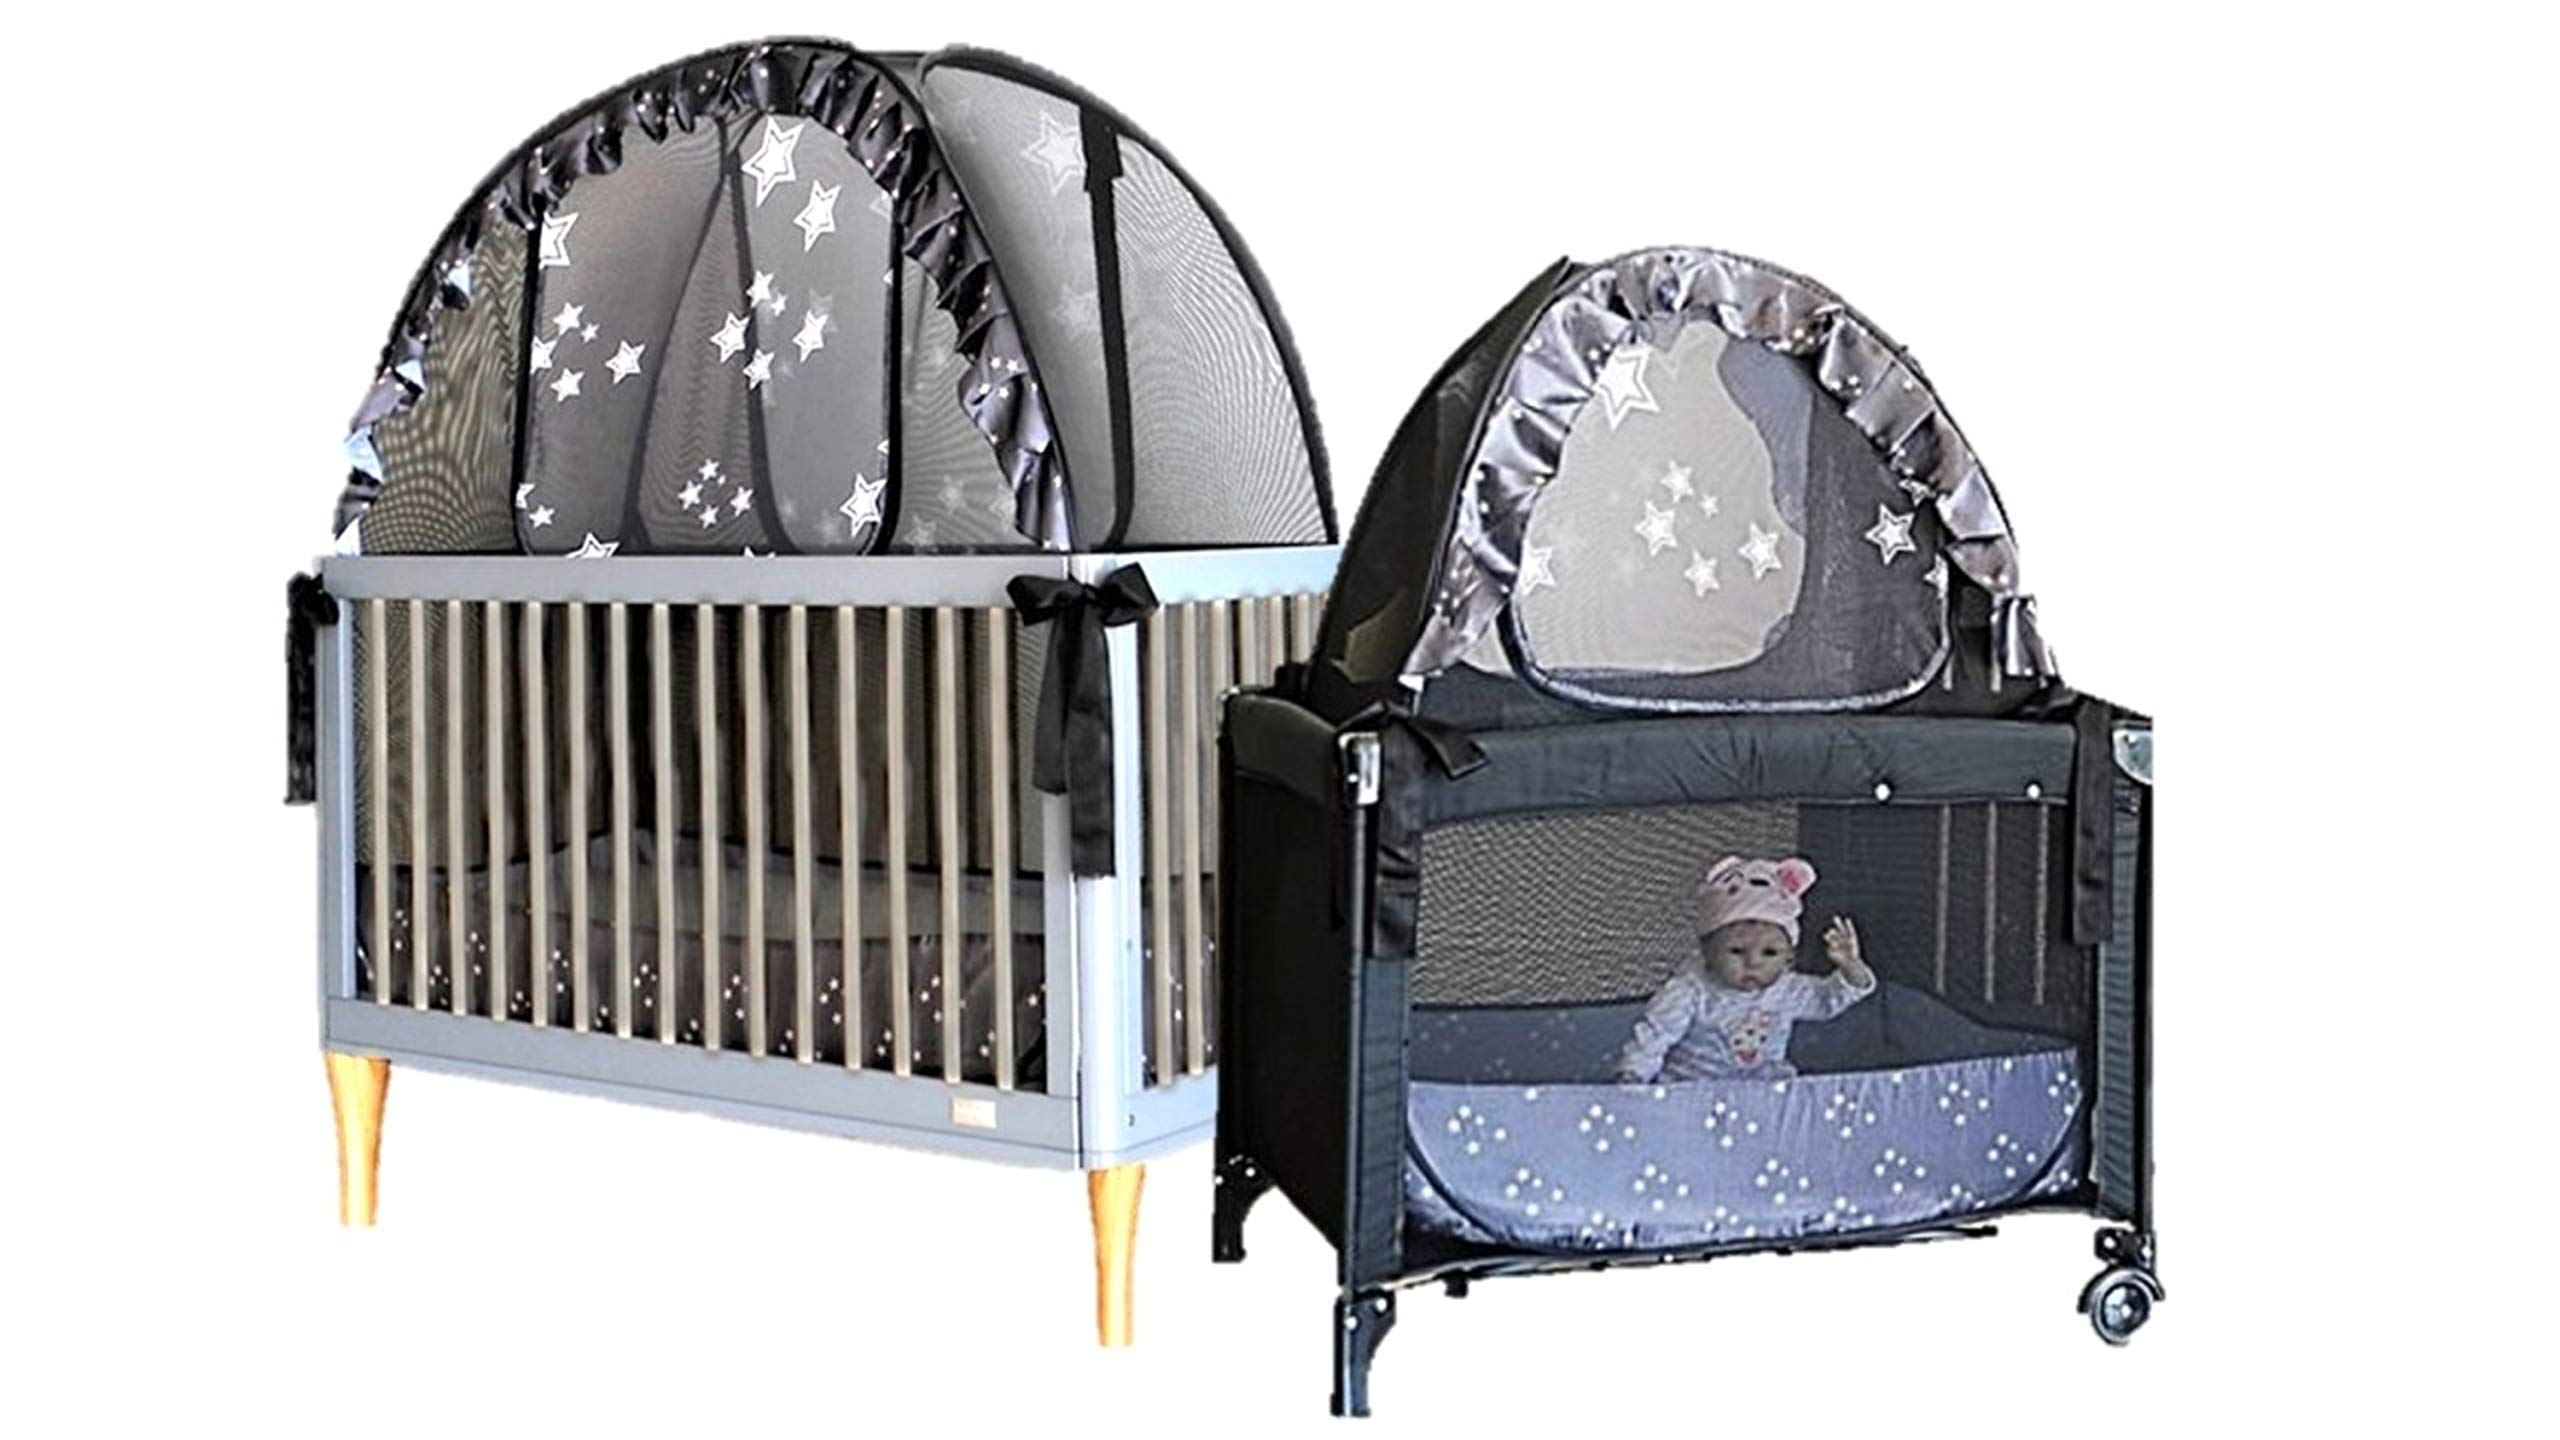 Popup Crib Tent and Travel Tent Bundle - Keep Babies and Toddlers from Climbing Out of The Crib and so Much More